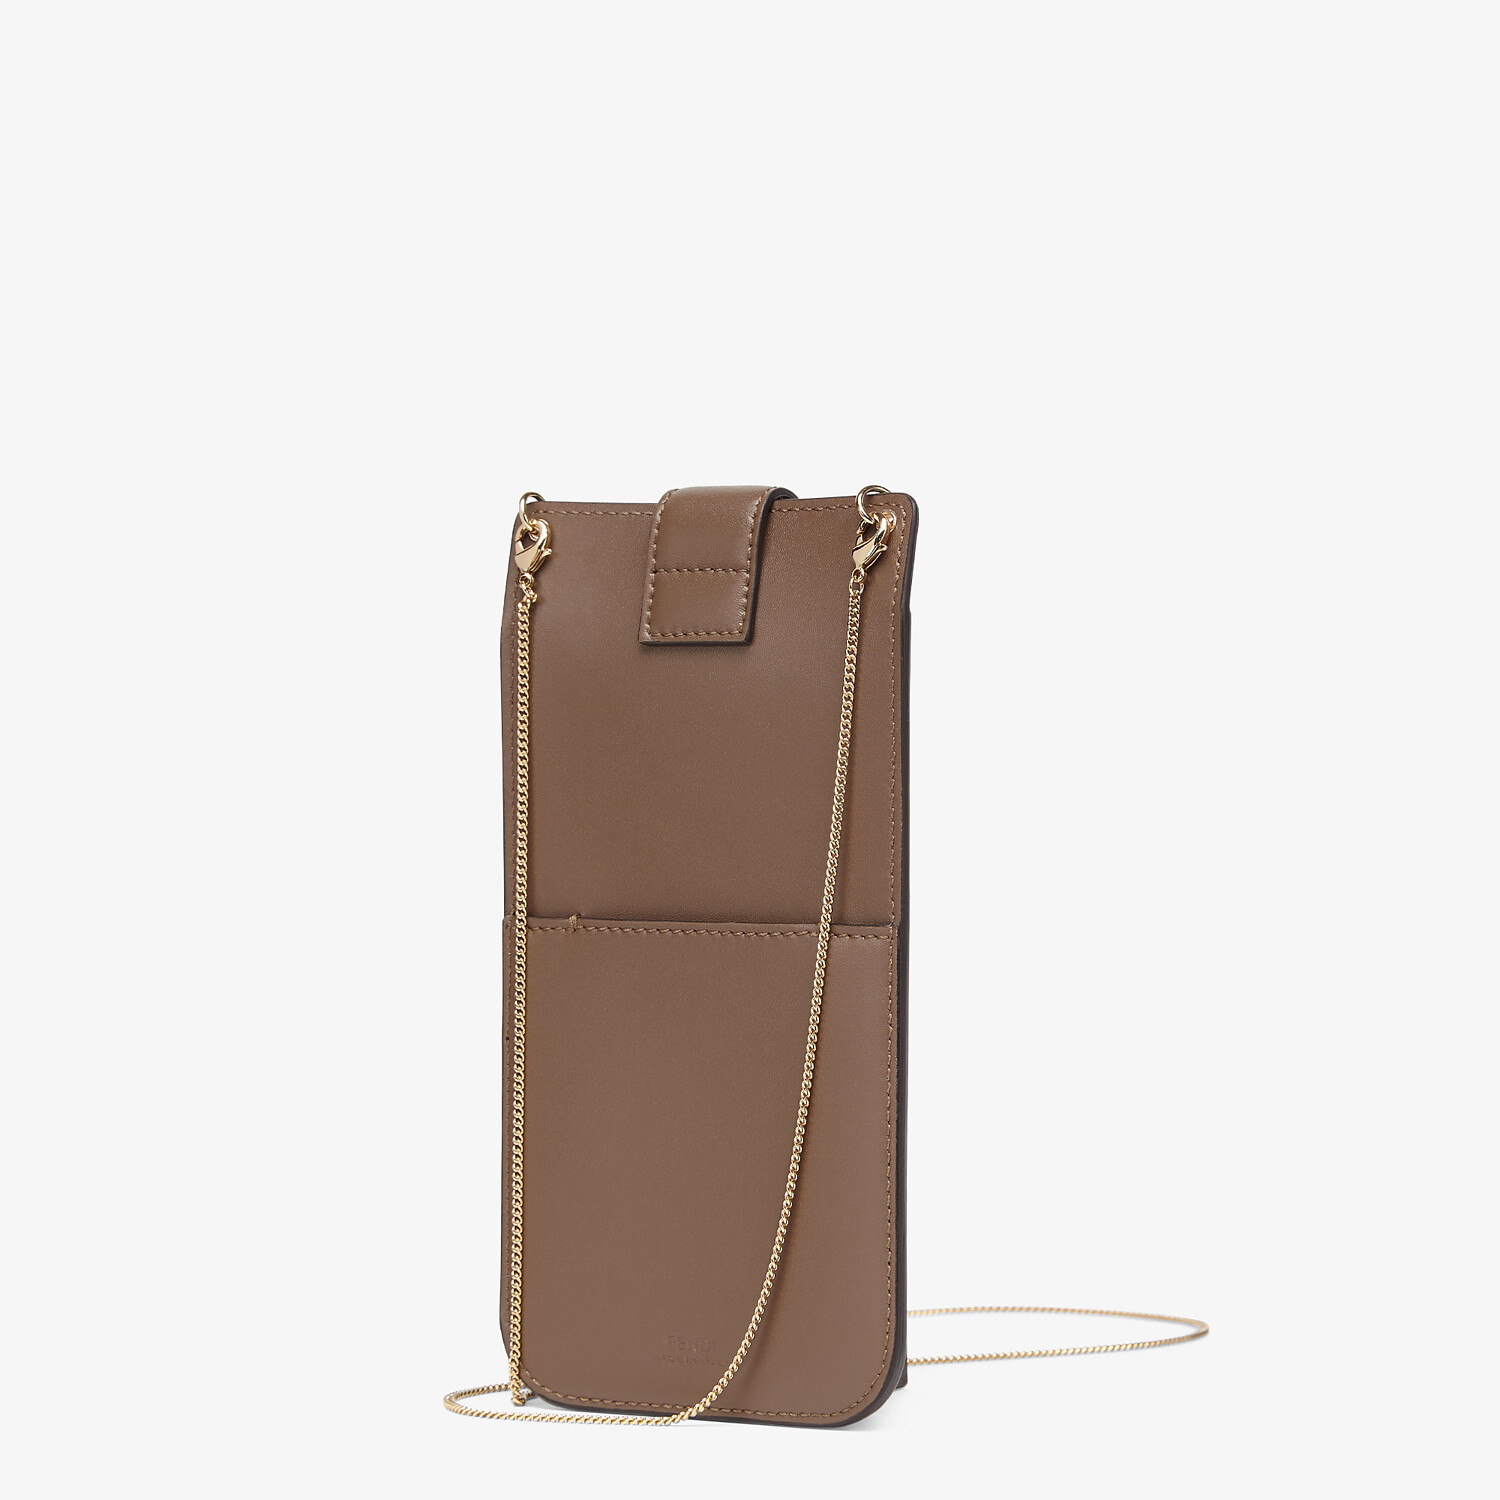 FENDI PHONE POUCH - Brown leather pouch - view 2 detail